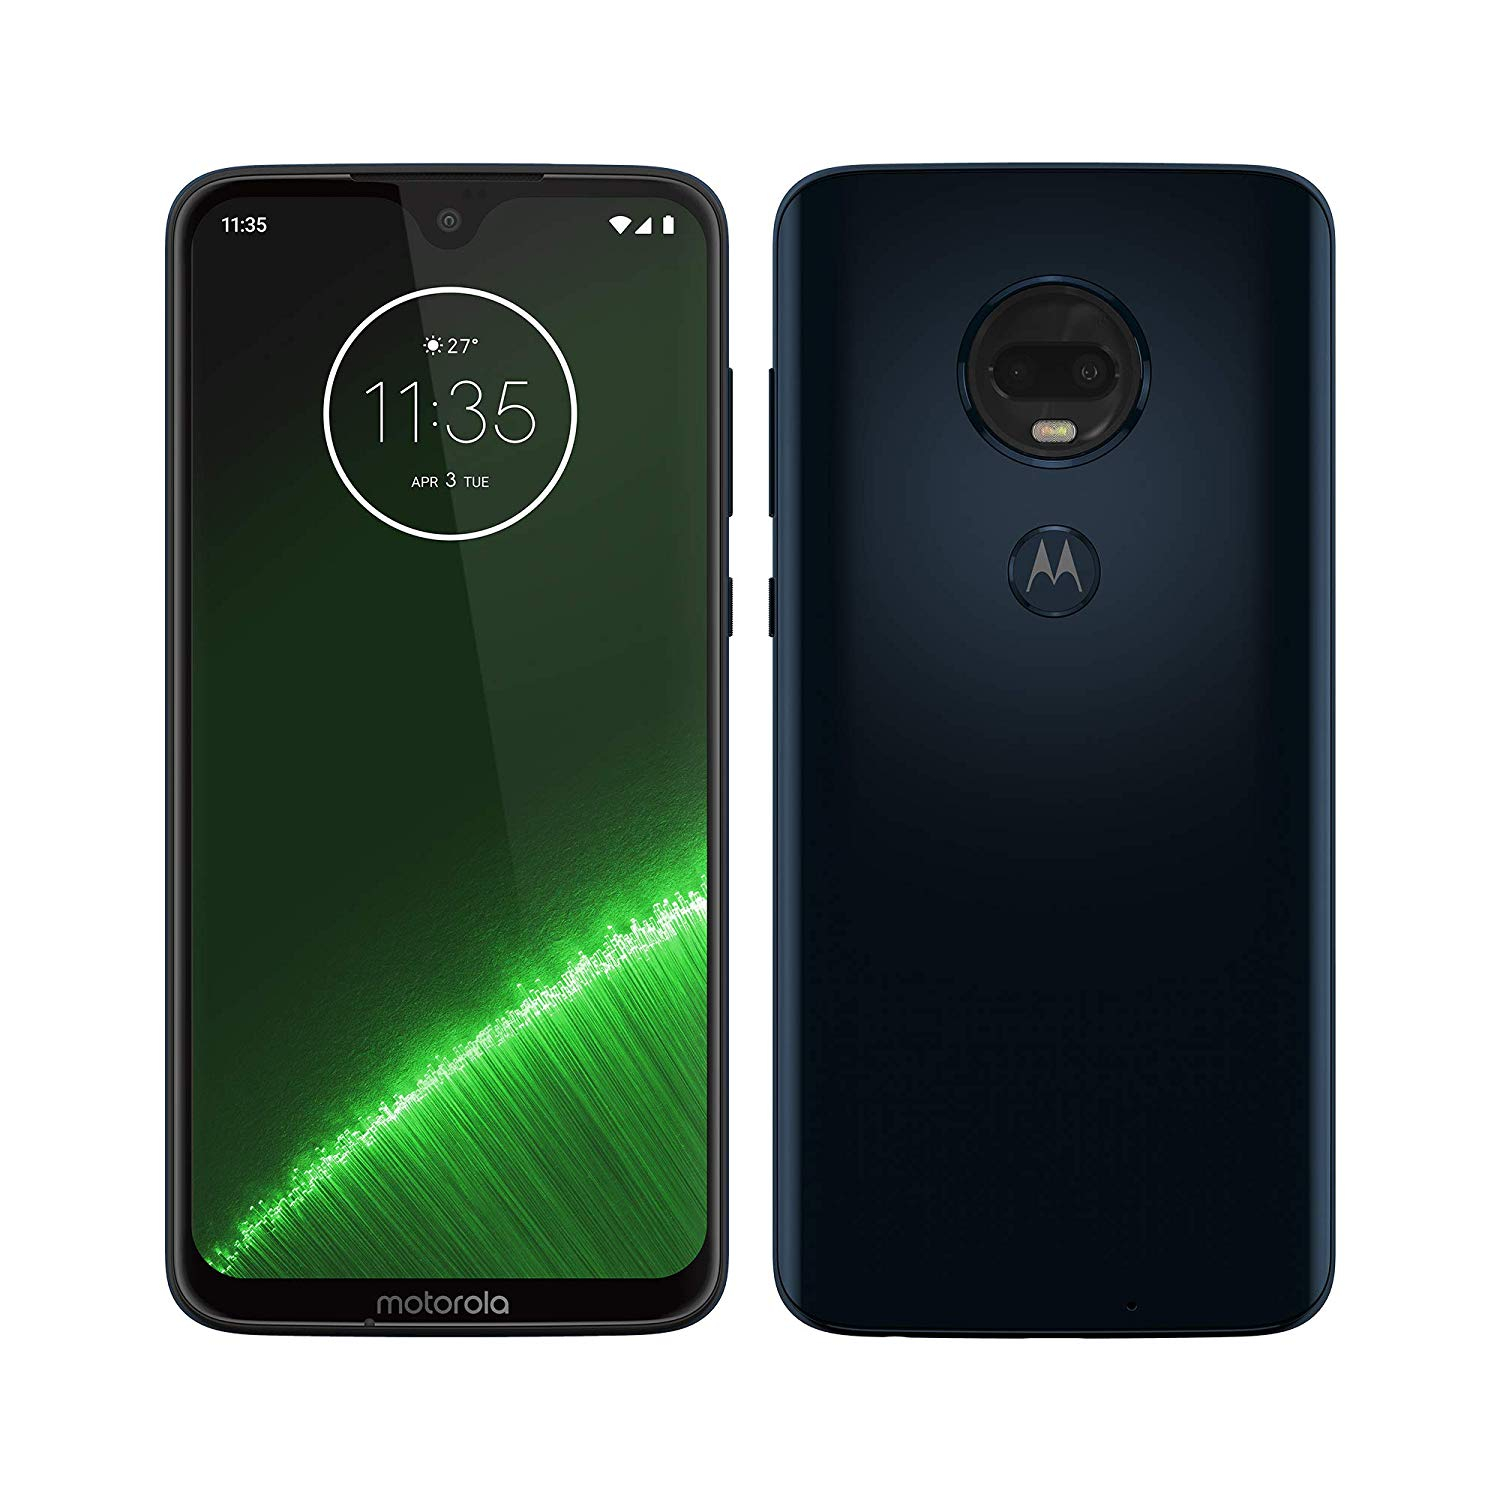 Motorola Moto G7 Plus, Color Blue (Blue), Dual SIM, Band 4G/LTE/WiFi, Internal 6 4GB De Memoria, 4GB Ram, Pantal